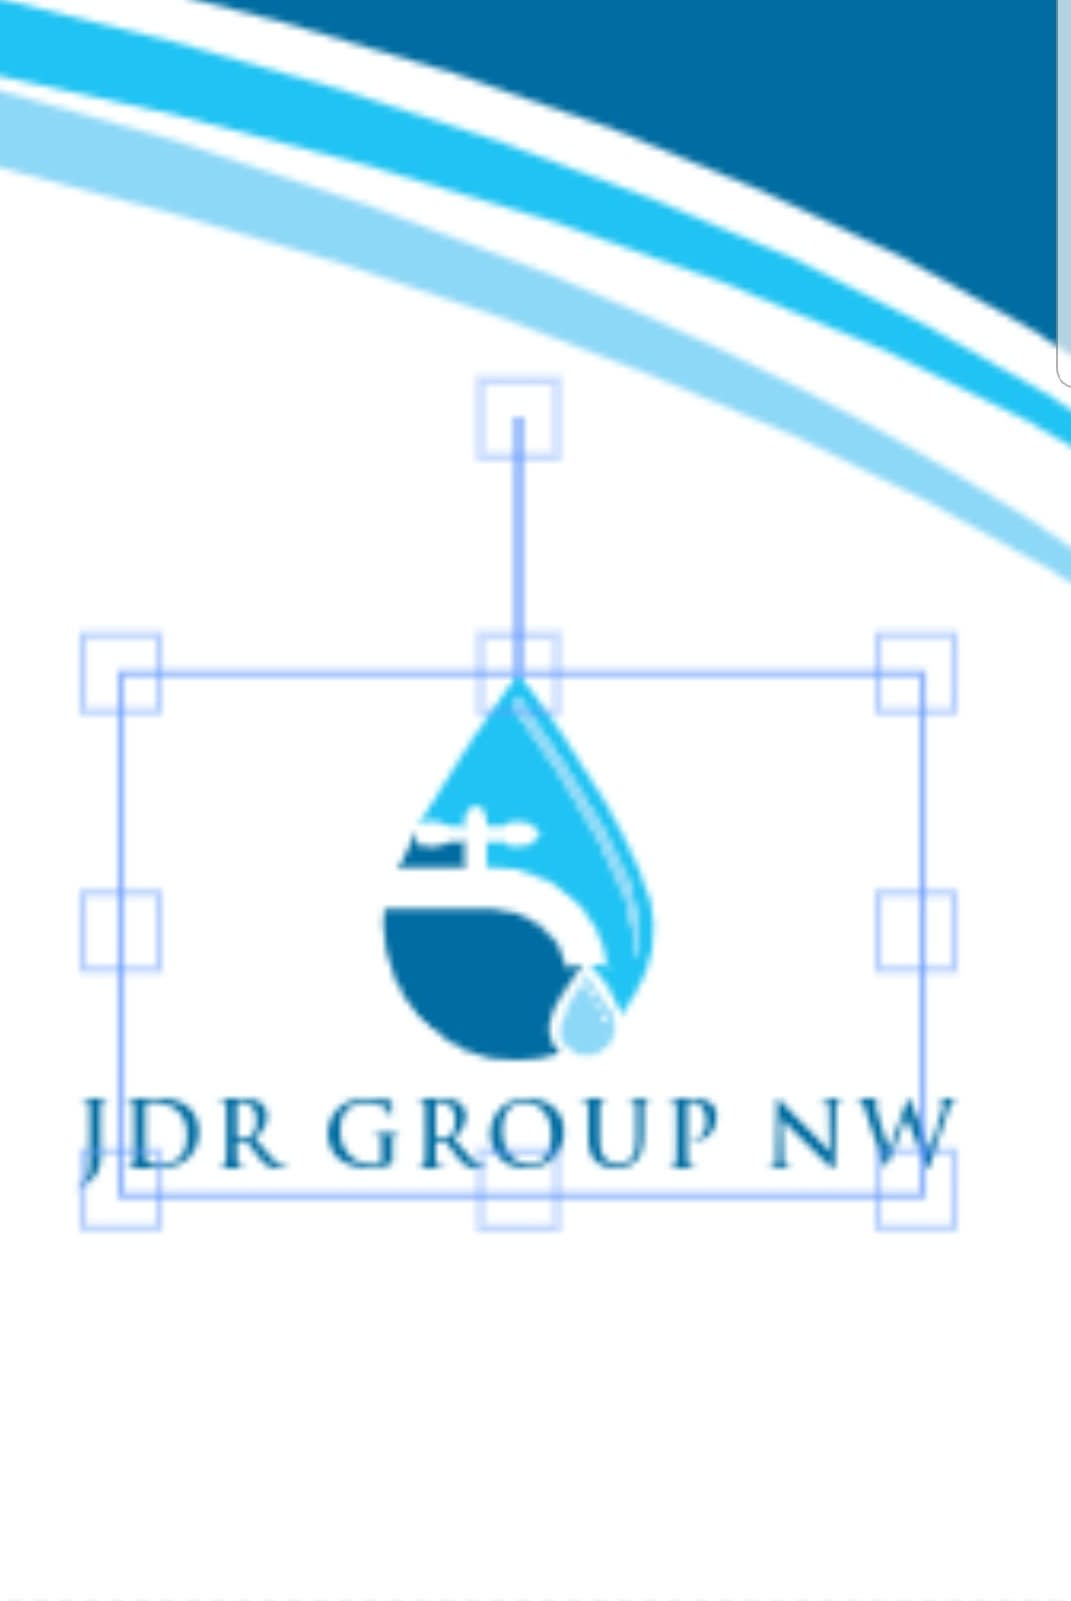 JDR Group NW